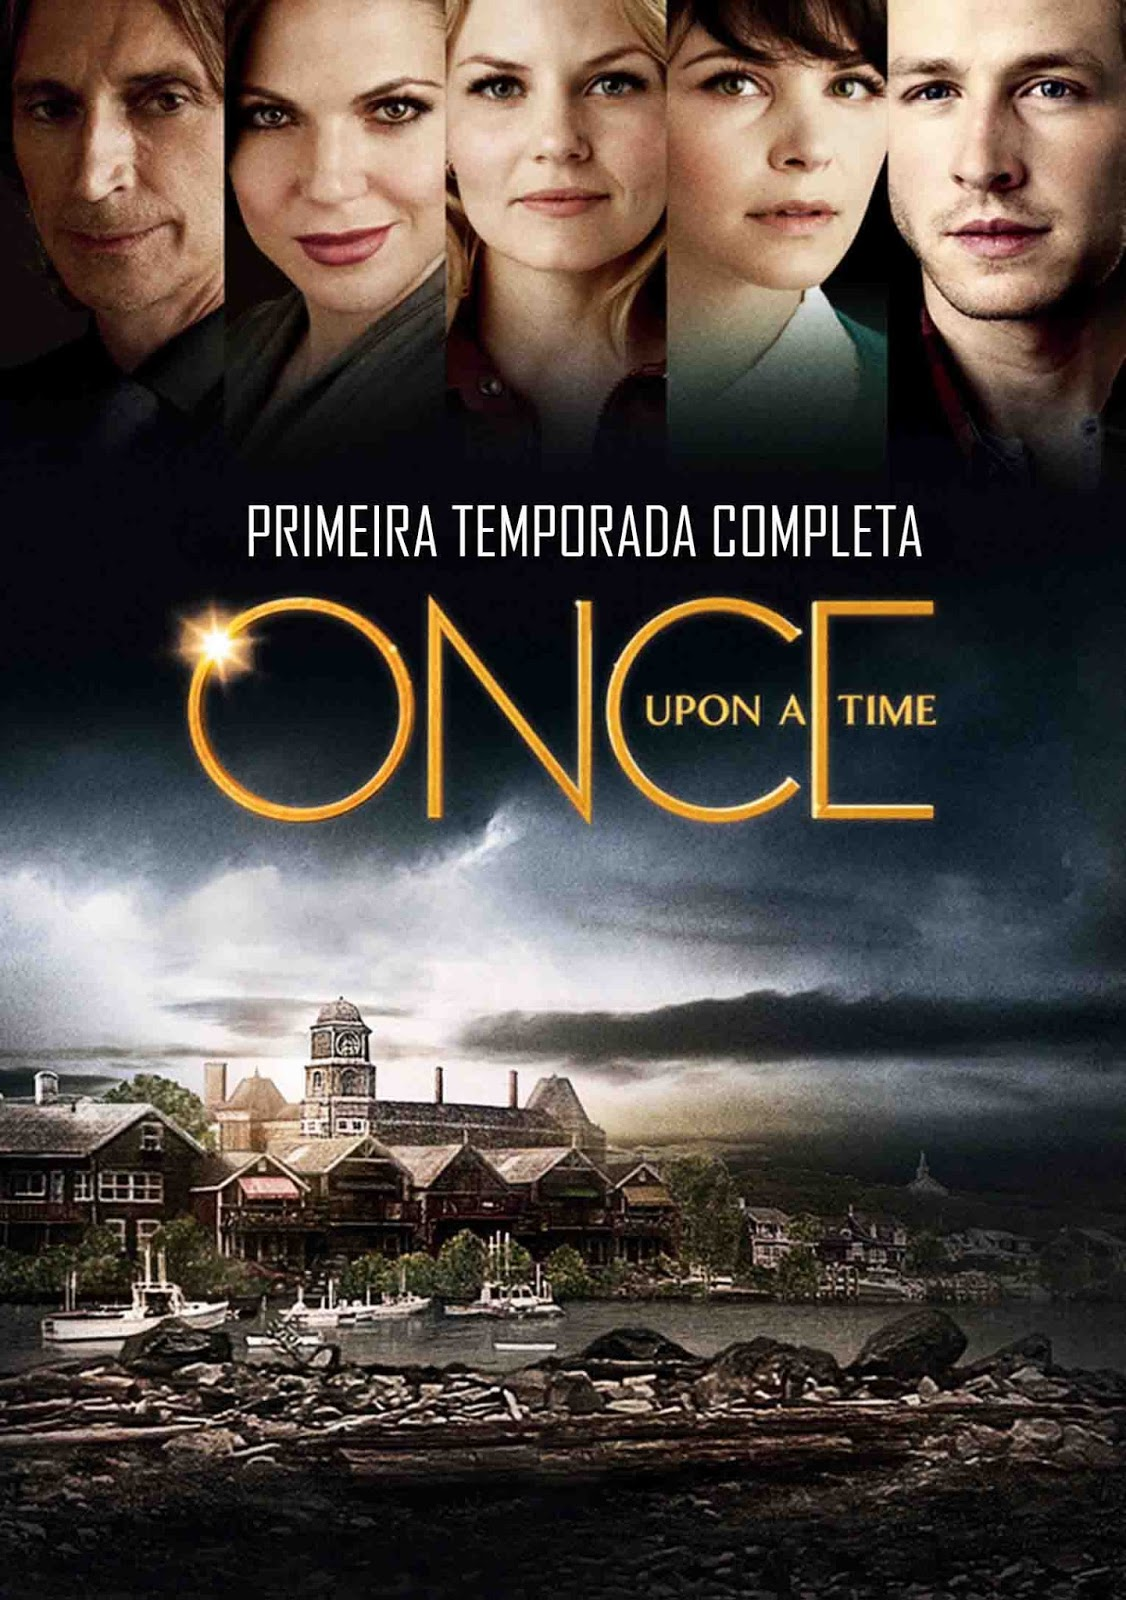 Once Upon a Time 1ª Temporada Torrent - Blu-ray Rip 720p Dual Áudio (2011)